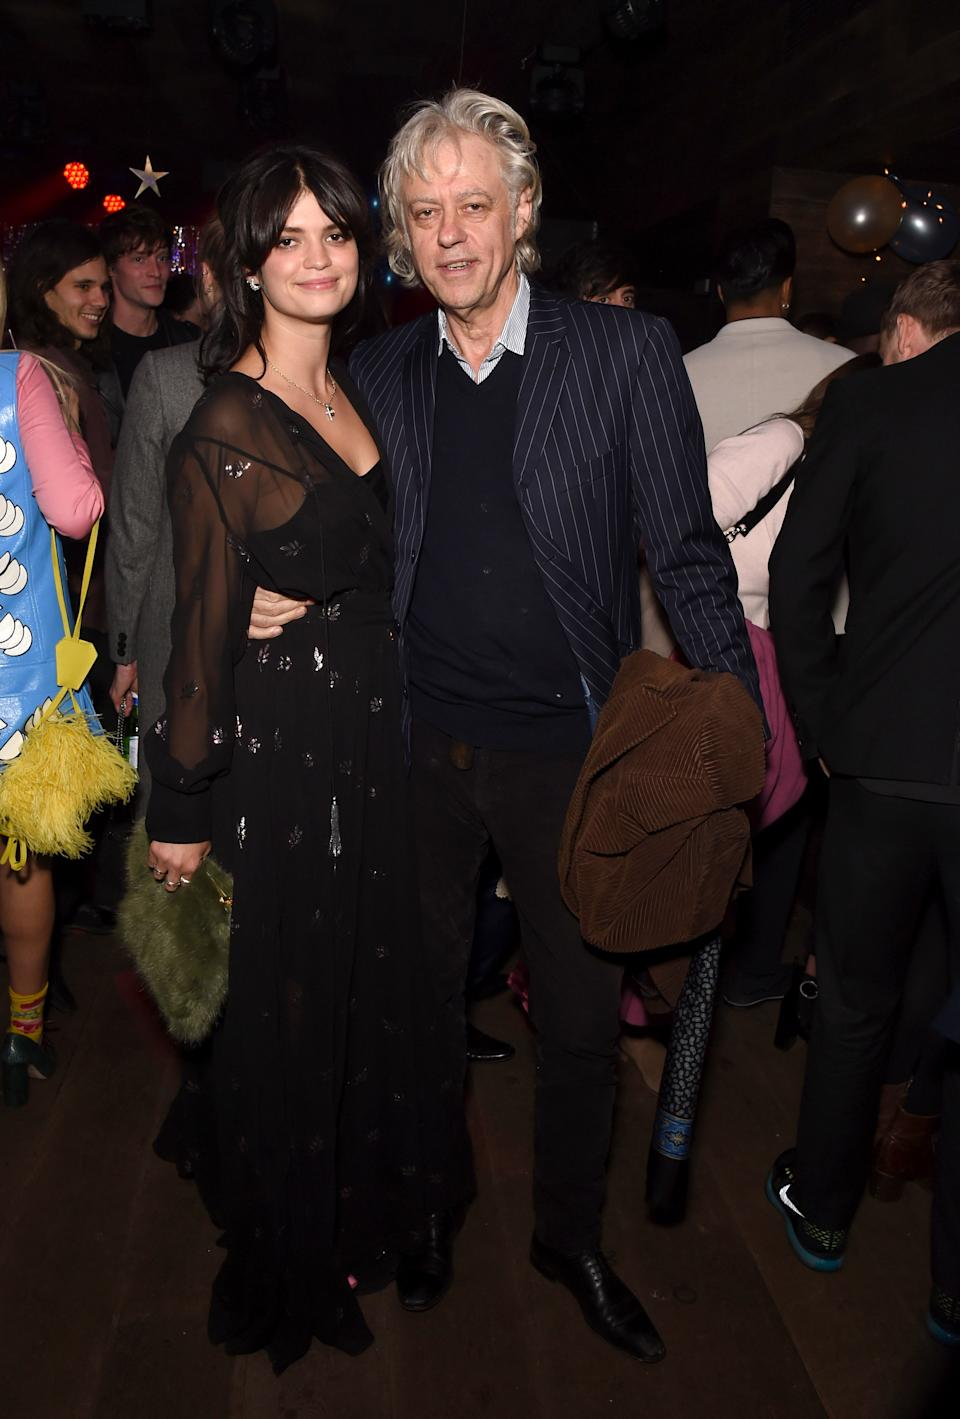 LONDON, ENGLAND - NOVEMBER 03:  Pixie Geldof and Bob Geldof attend Pixie's album launch hosted by Semaine at The London EDITION on November 3, 2016 in London, England.  (Photo by David M. Benett/Dave Benett / Getty Images for The London EDITION)